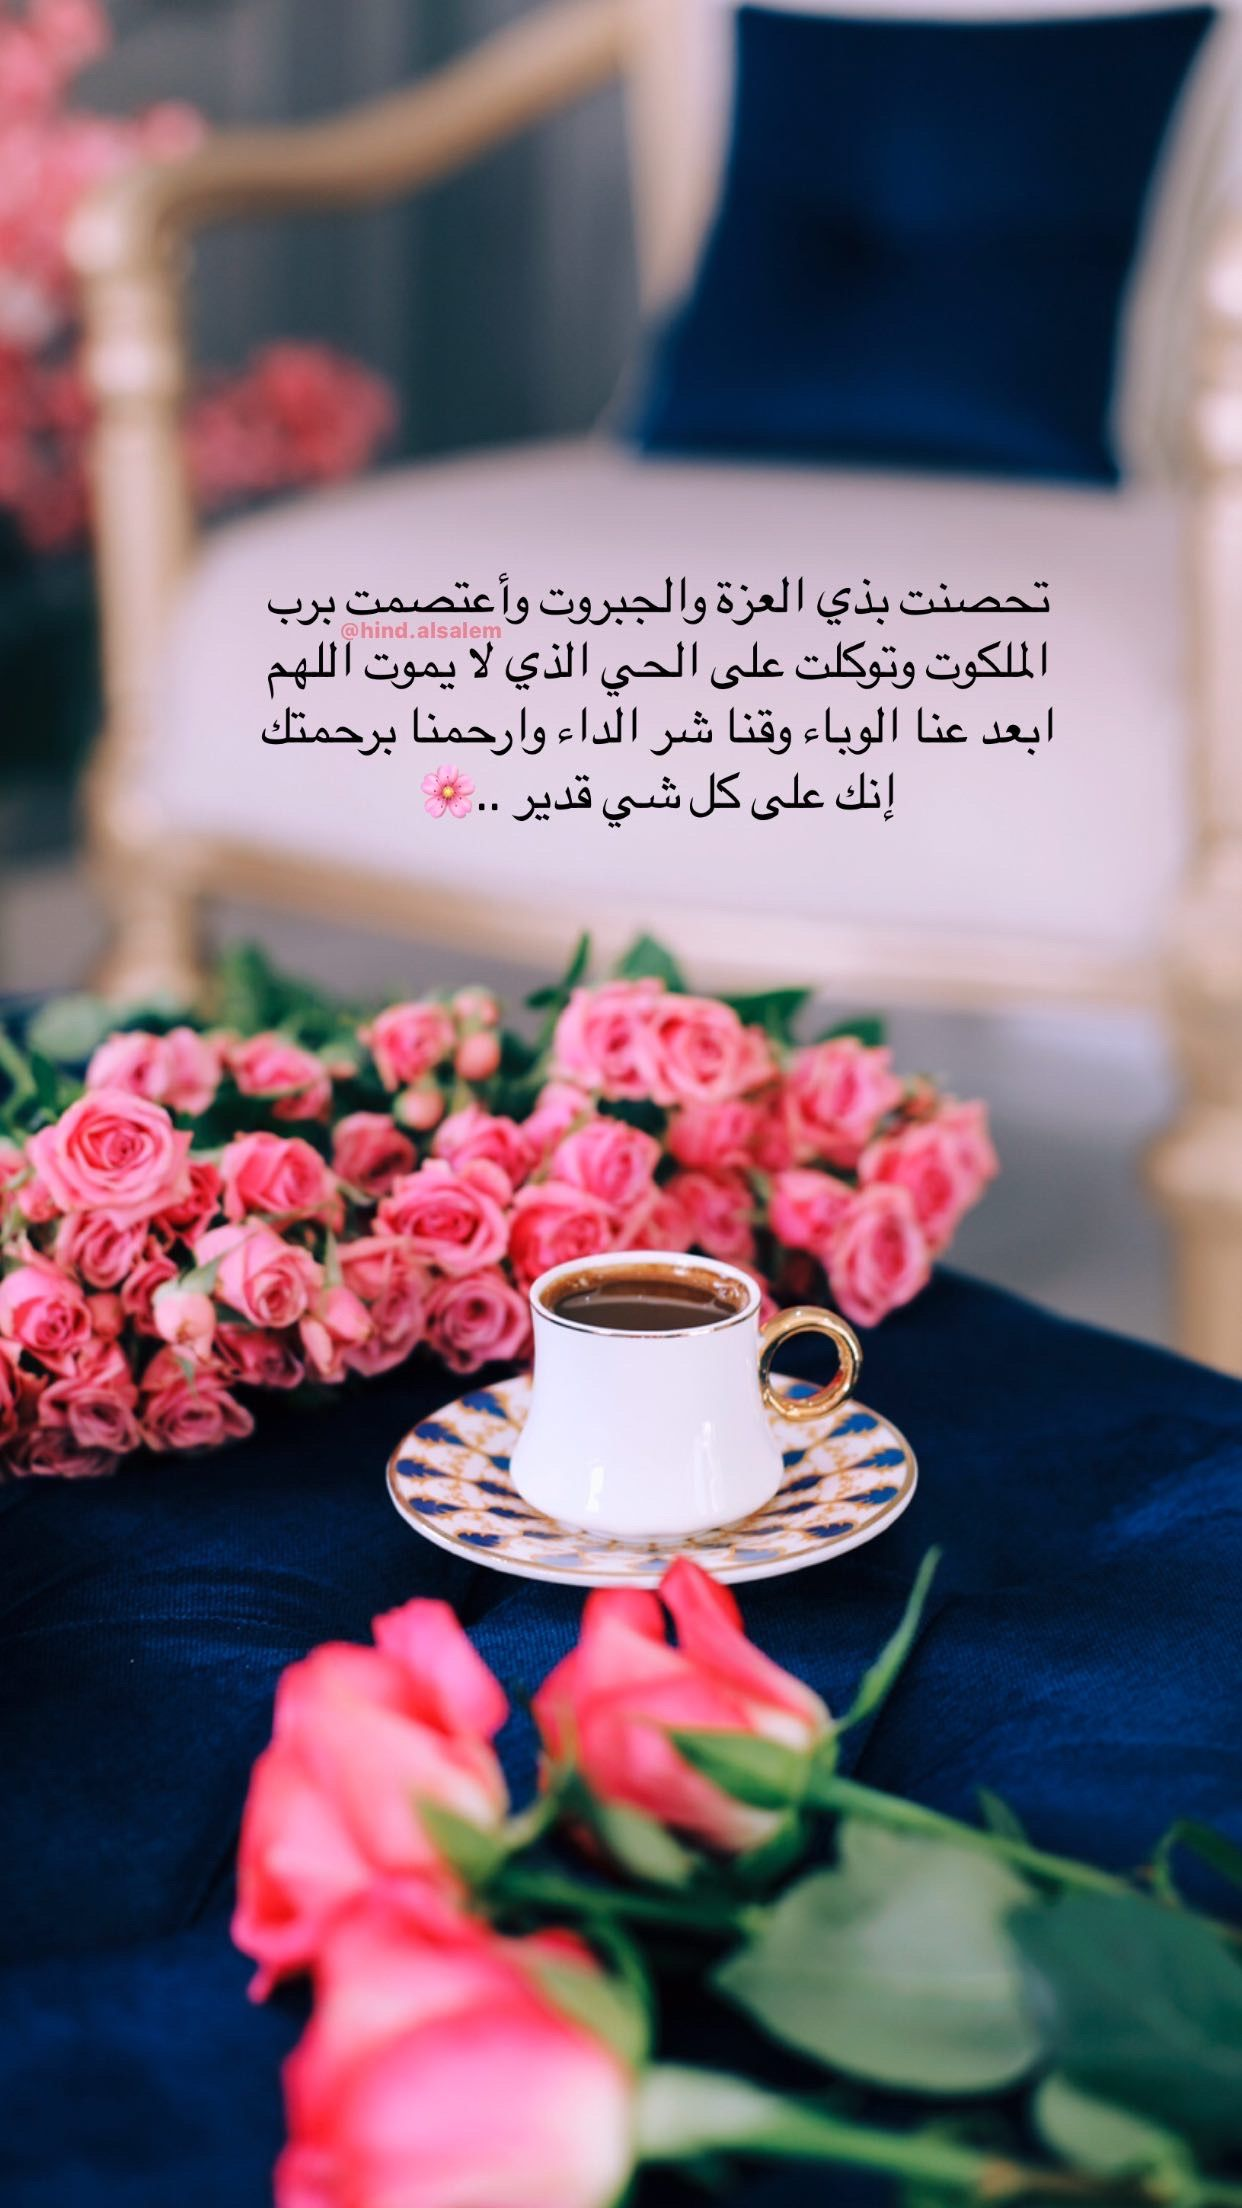 Pin By Tkylady On أدعيه In 2021 Photo Quotes Islamic Pictures Cute Wallpaper Backgrounds